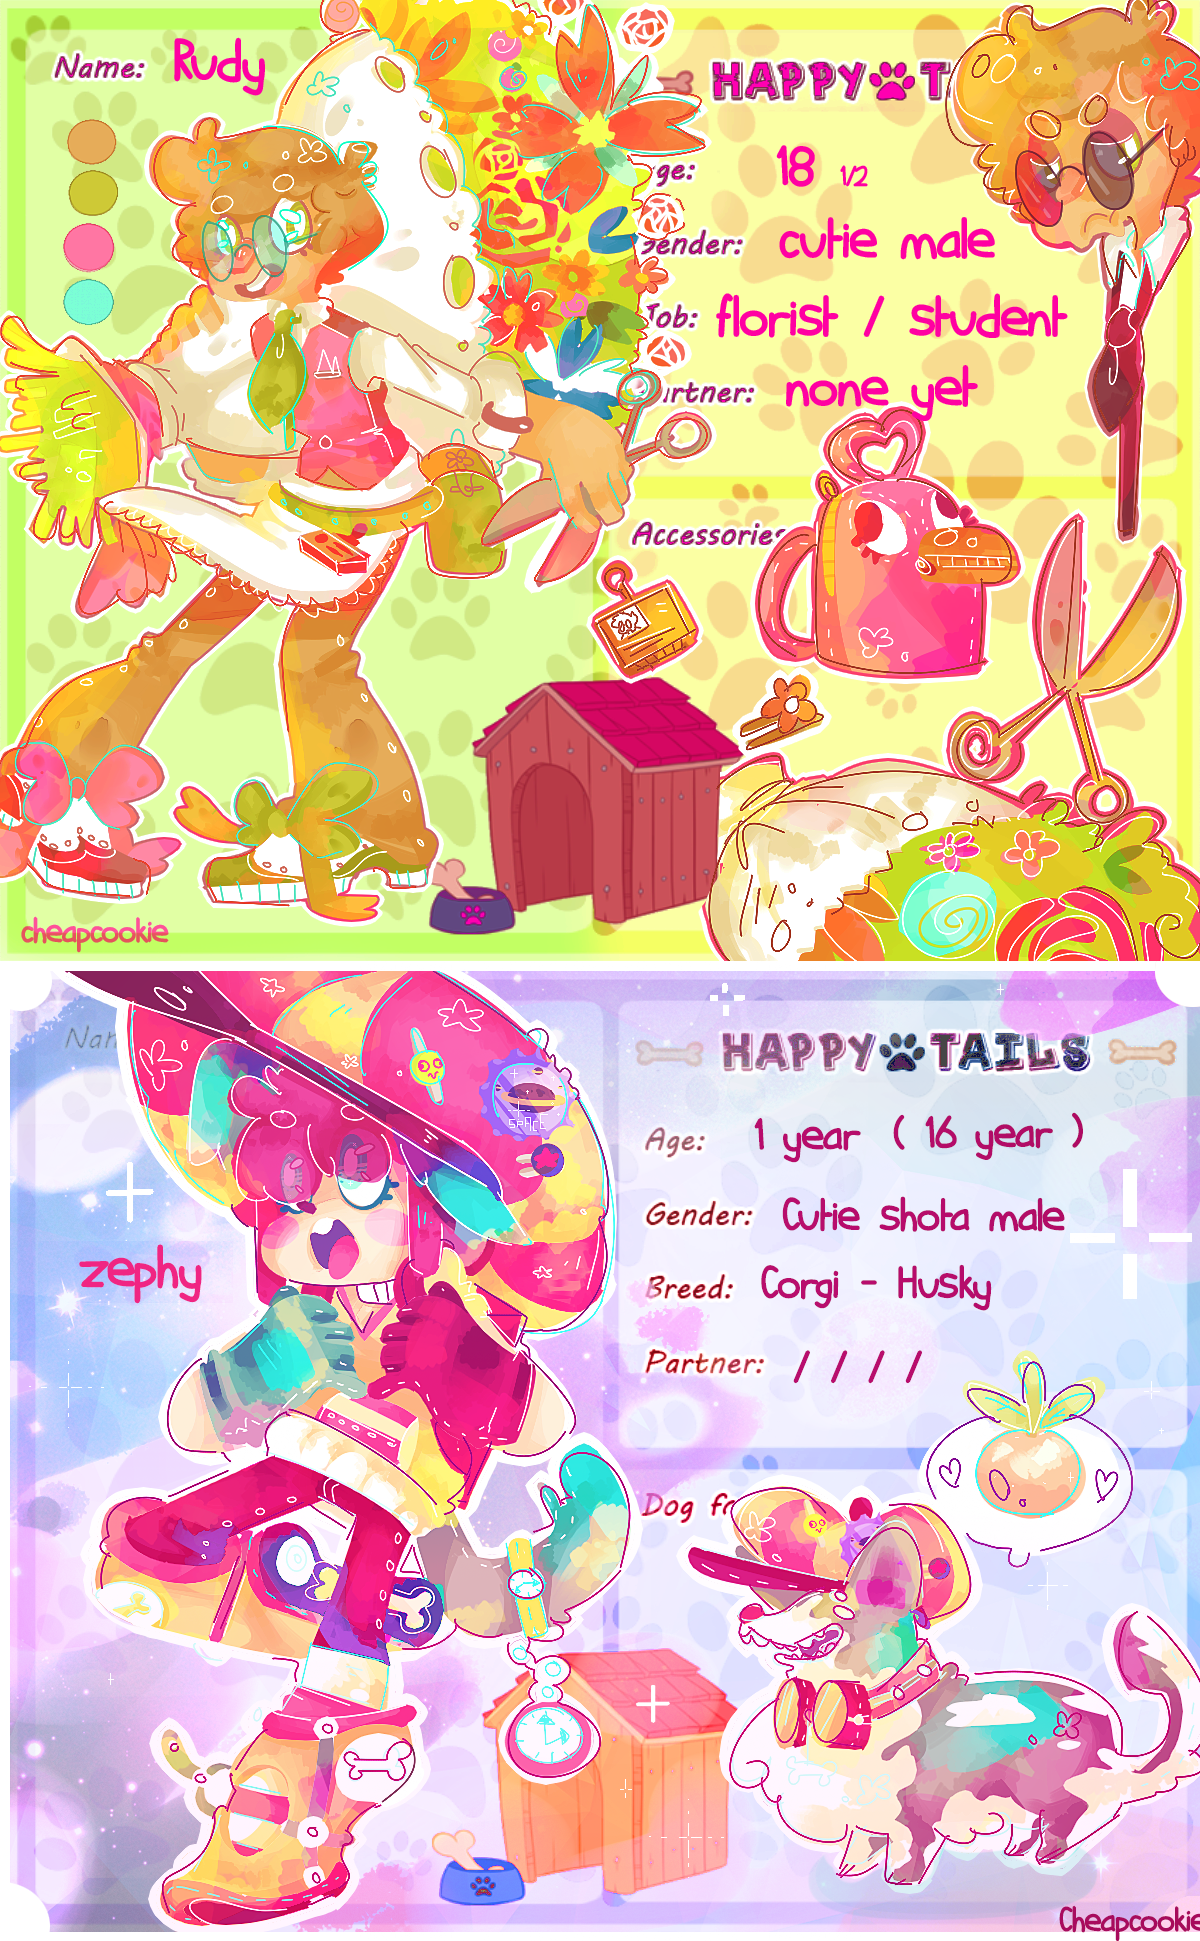 Happy-tails 's characters